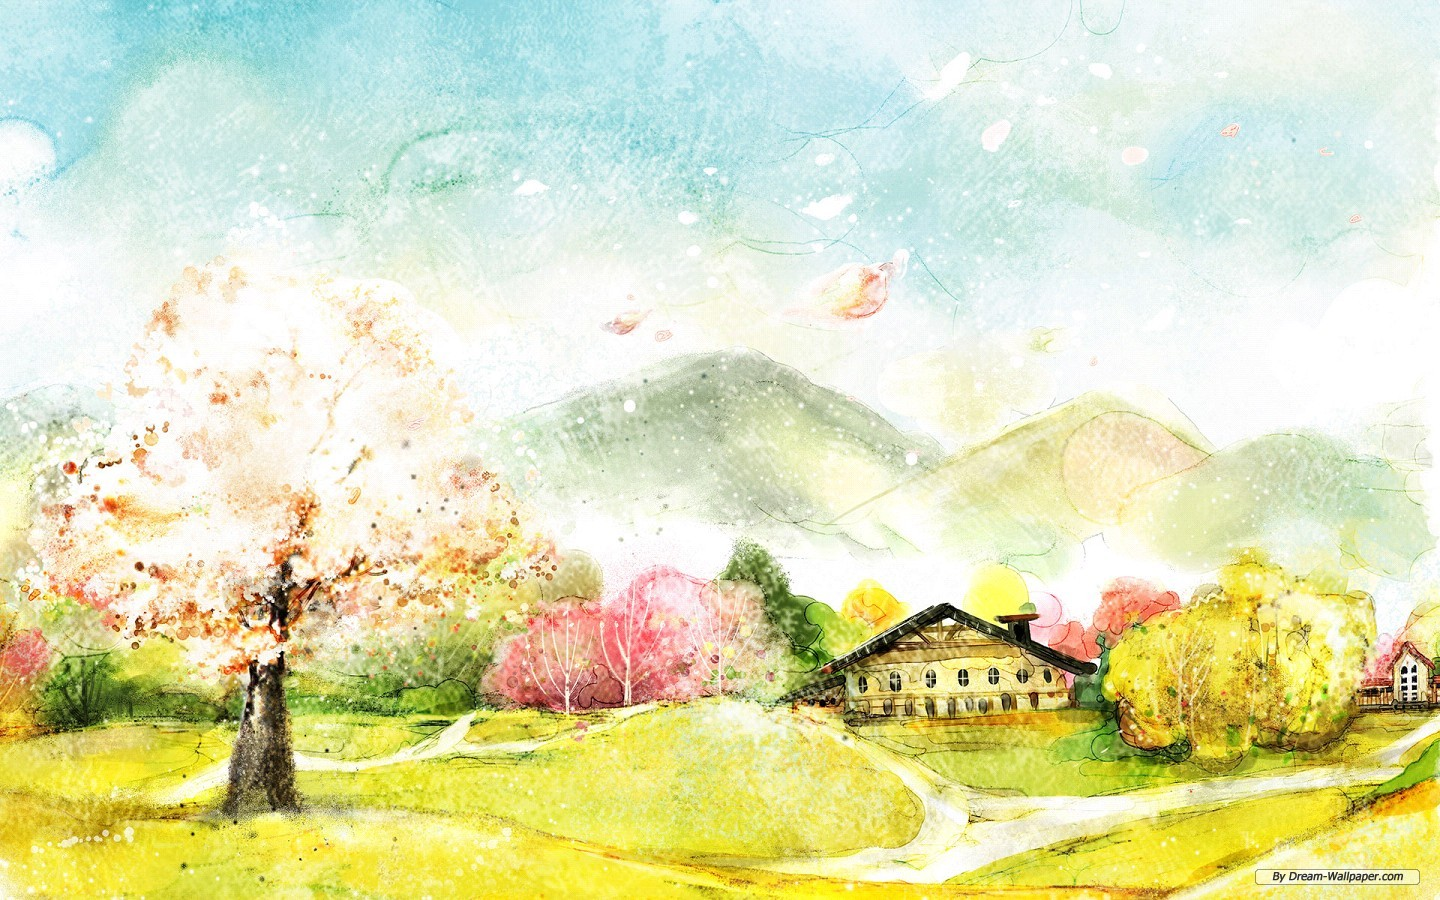 Drawn scenery nice scenery Wallpaper a For art wallpaper